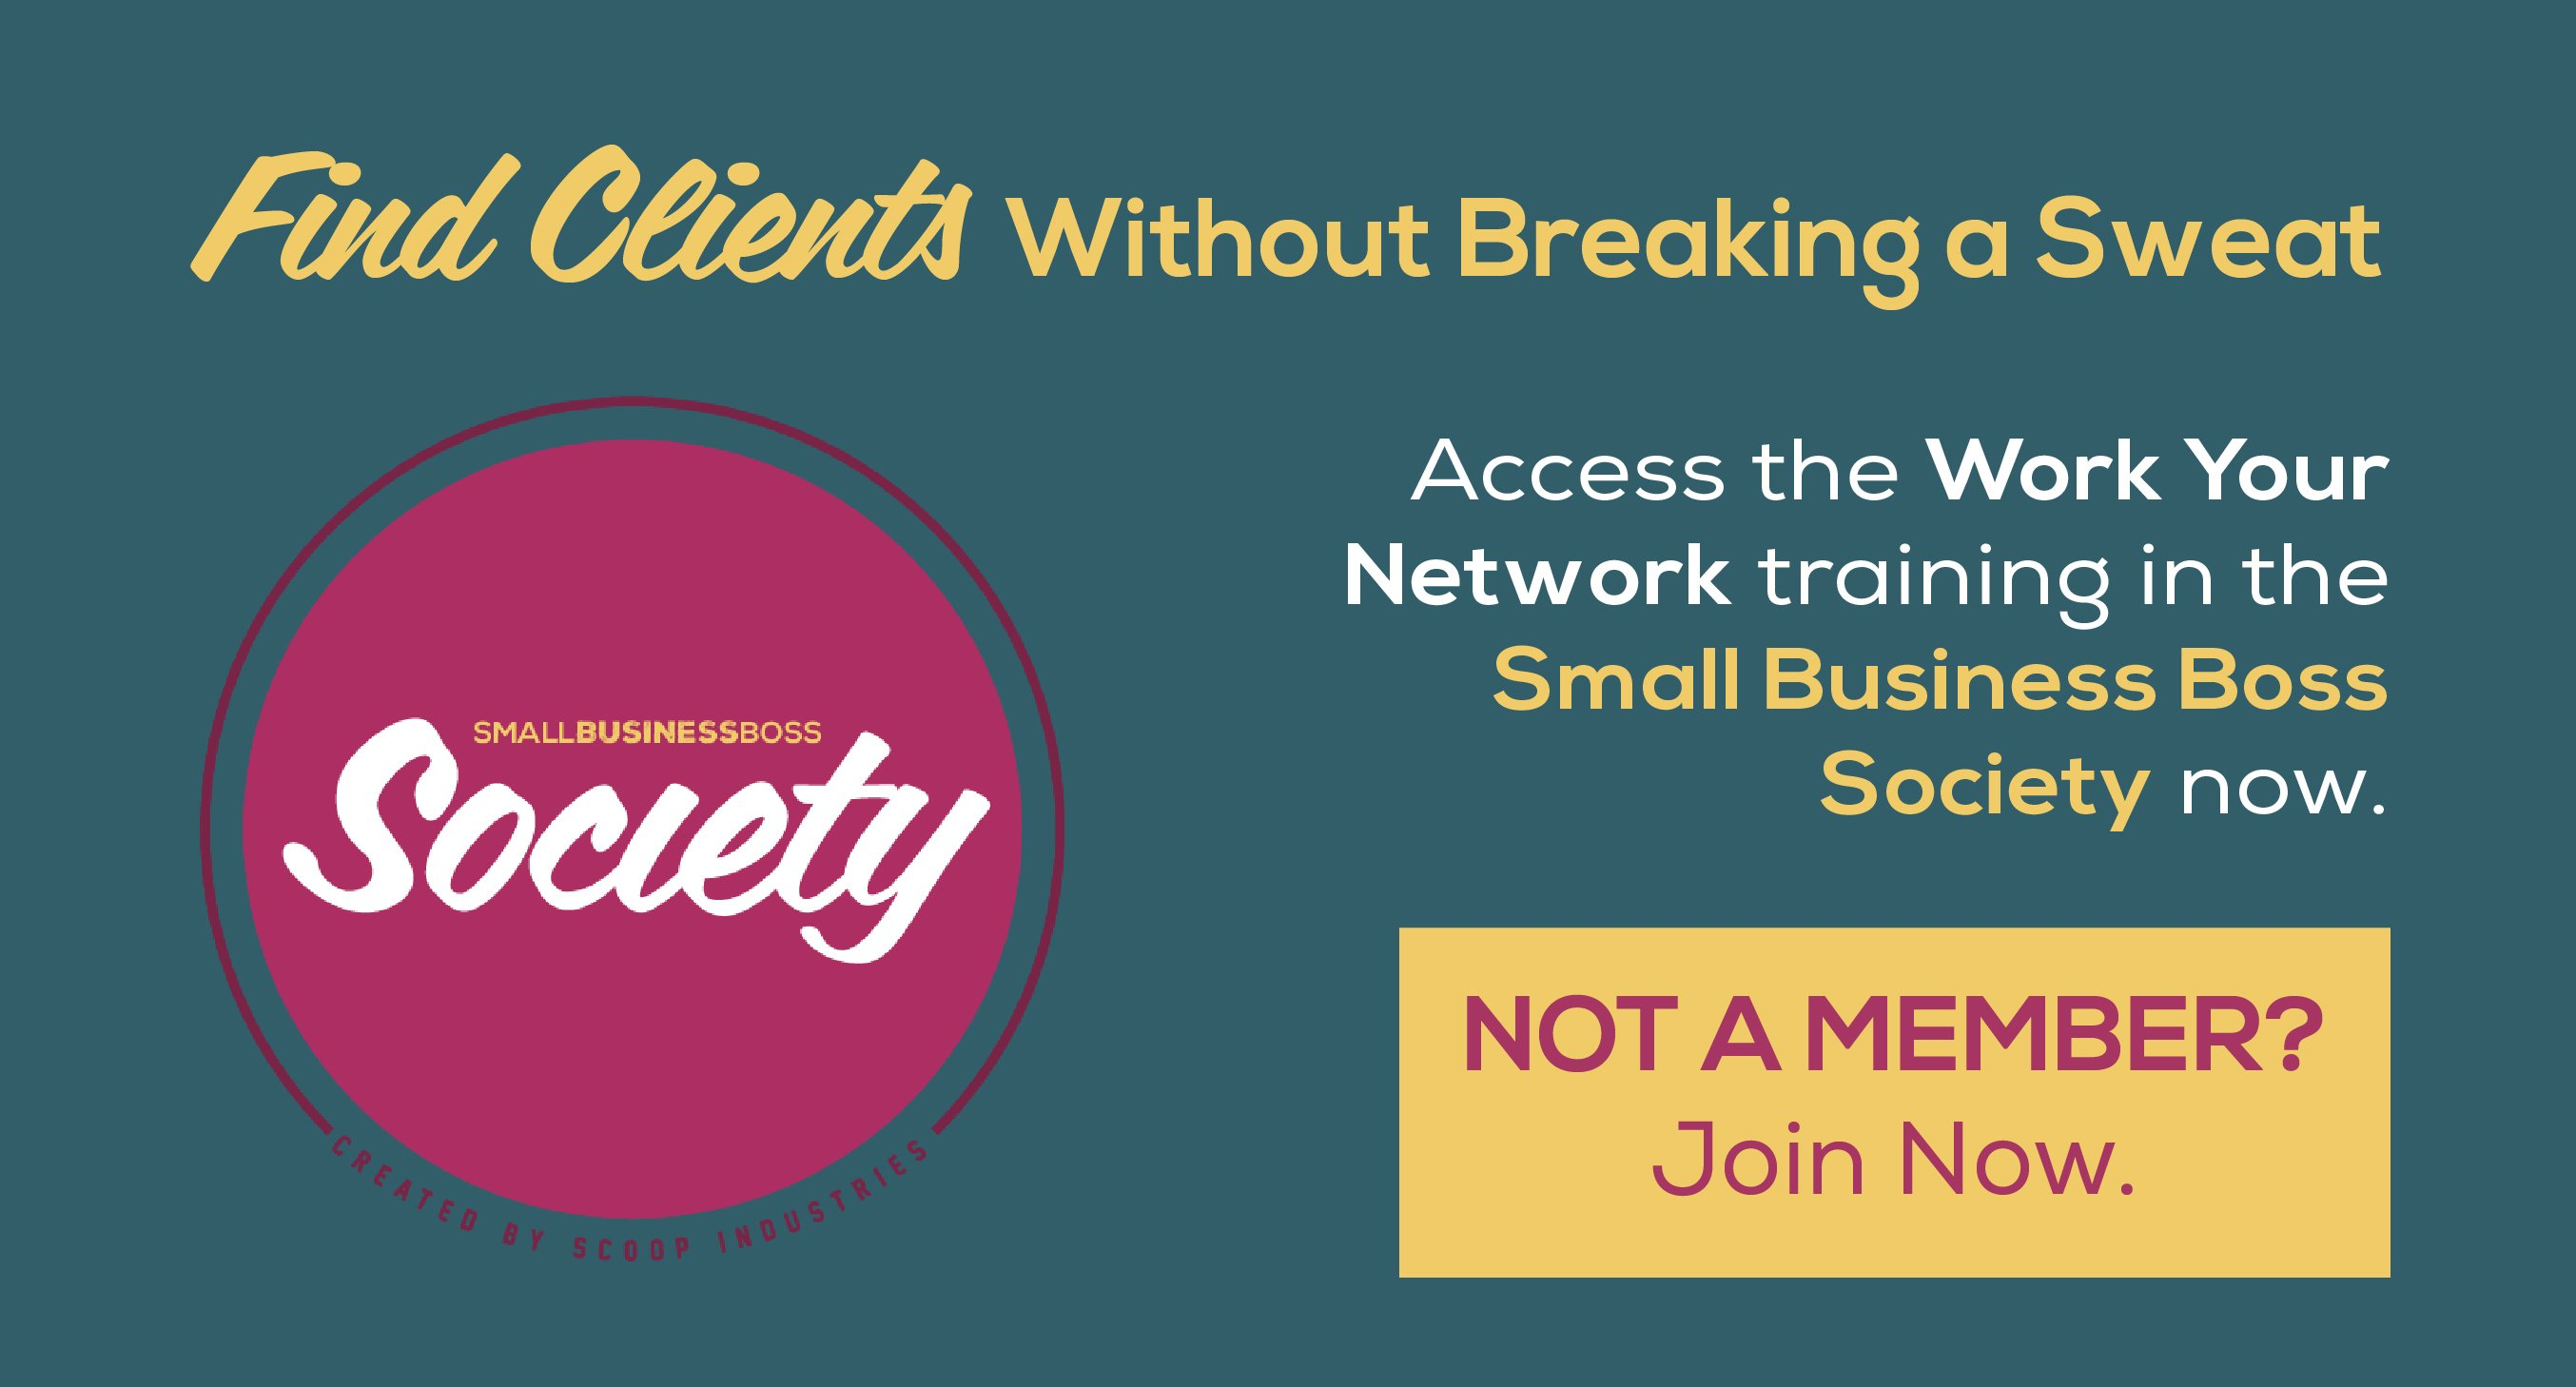 https://insidescoopacademy.com/small-business-boss-society/